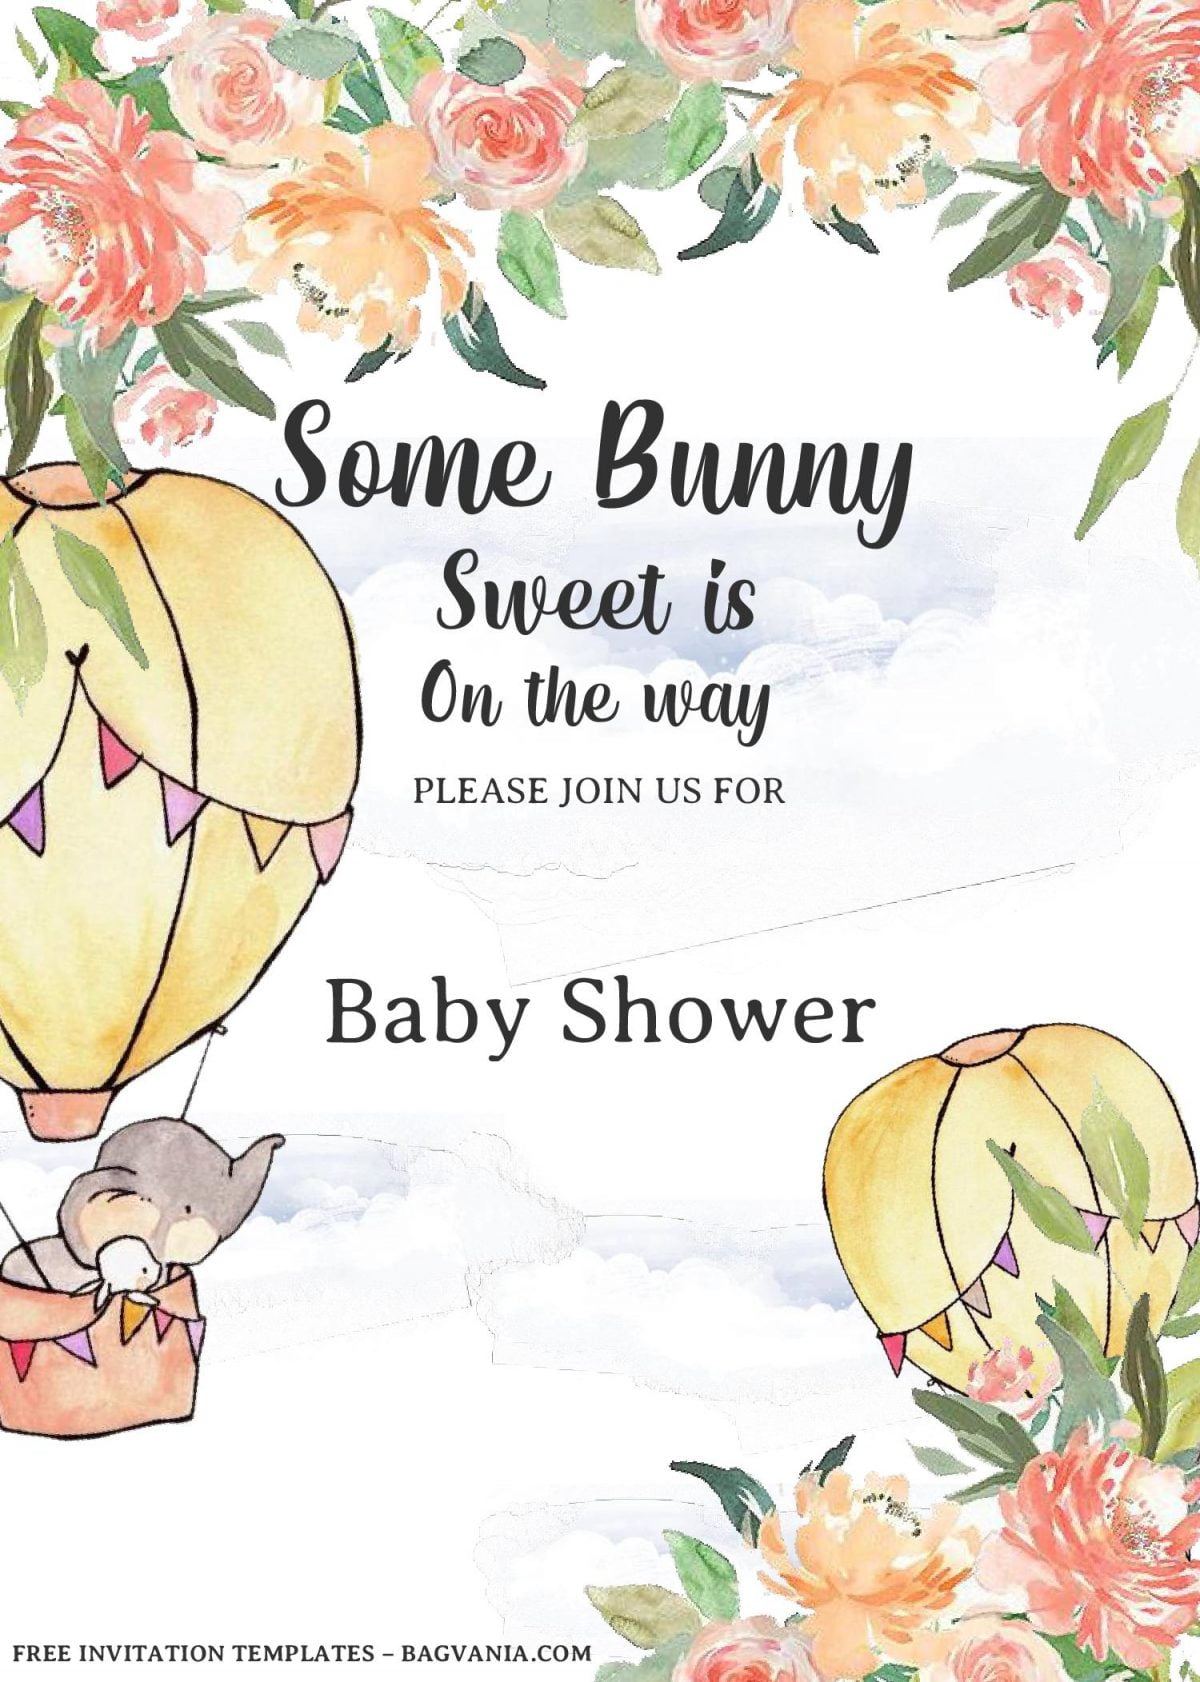 Some Bunny Invitation Templates - Editable With MS Word and has hot air balloons